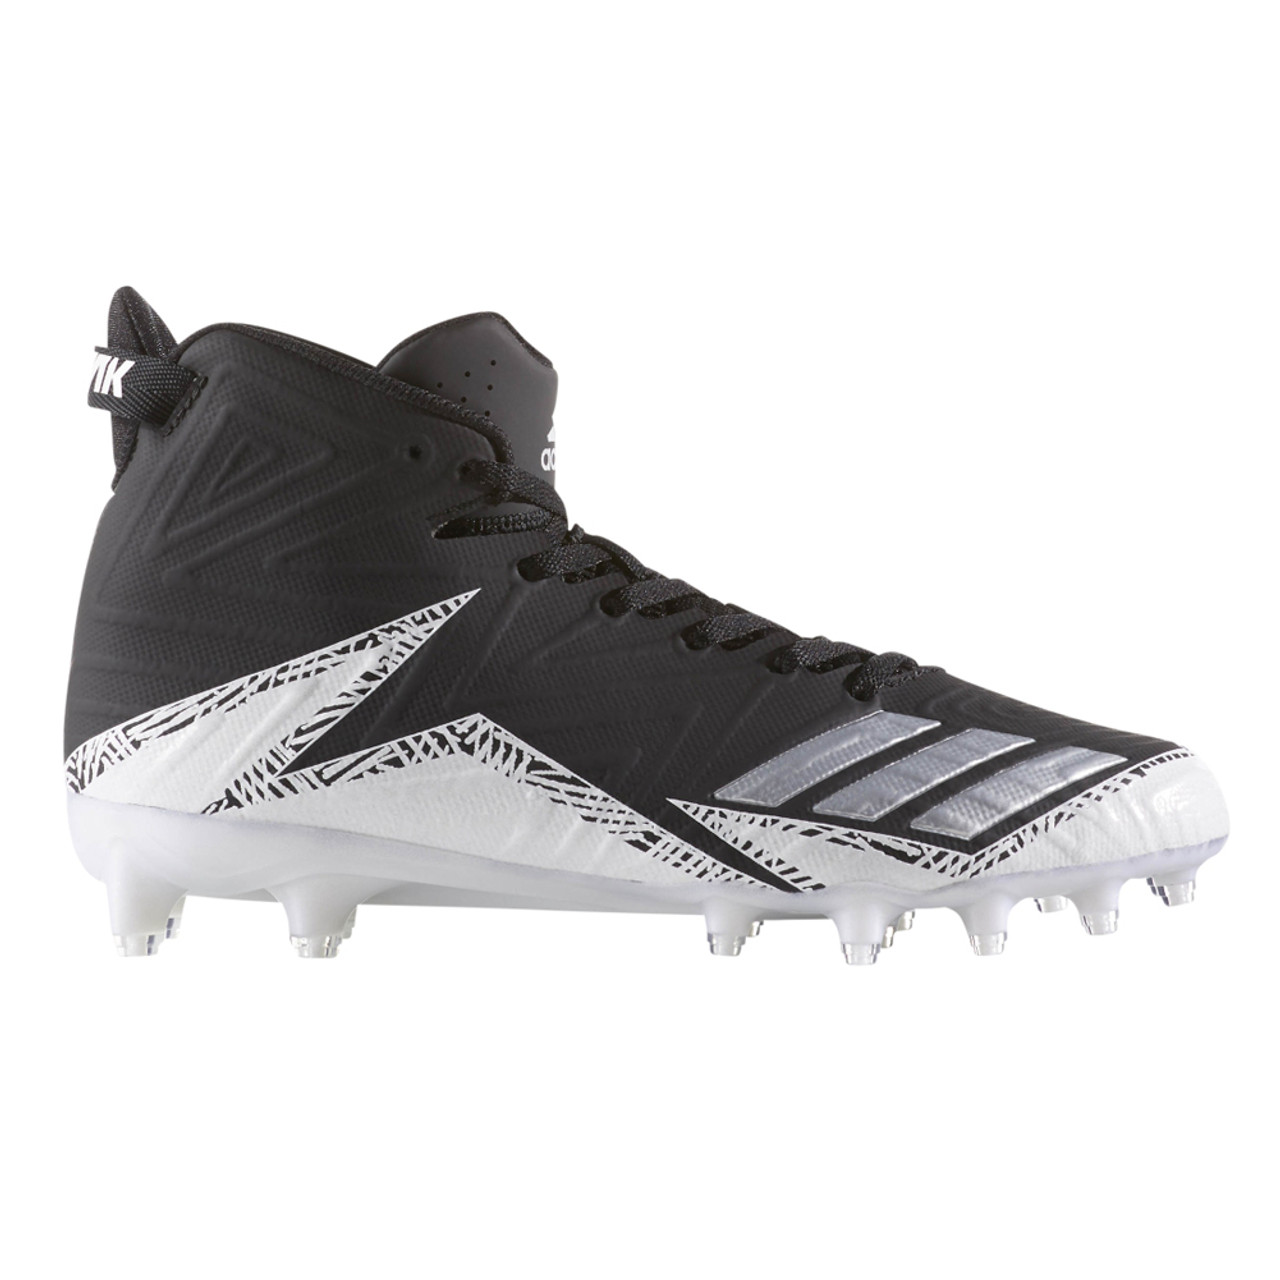 best sneakers b4849 2428e Adidas Men's Freak X Carbon Mid Football Cleat Black/Silver